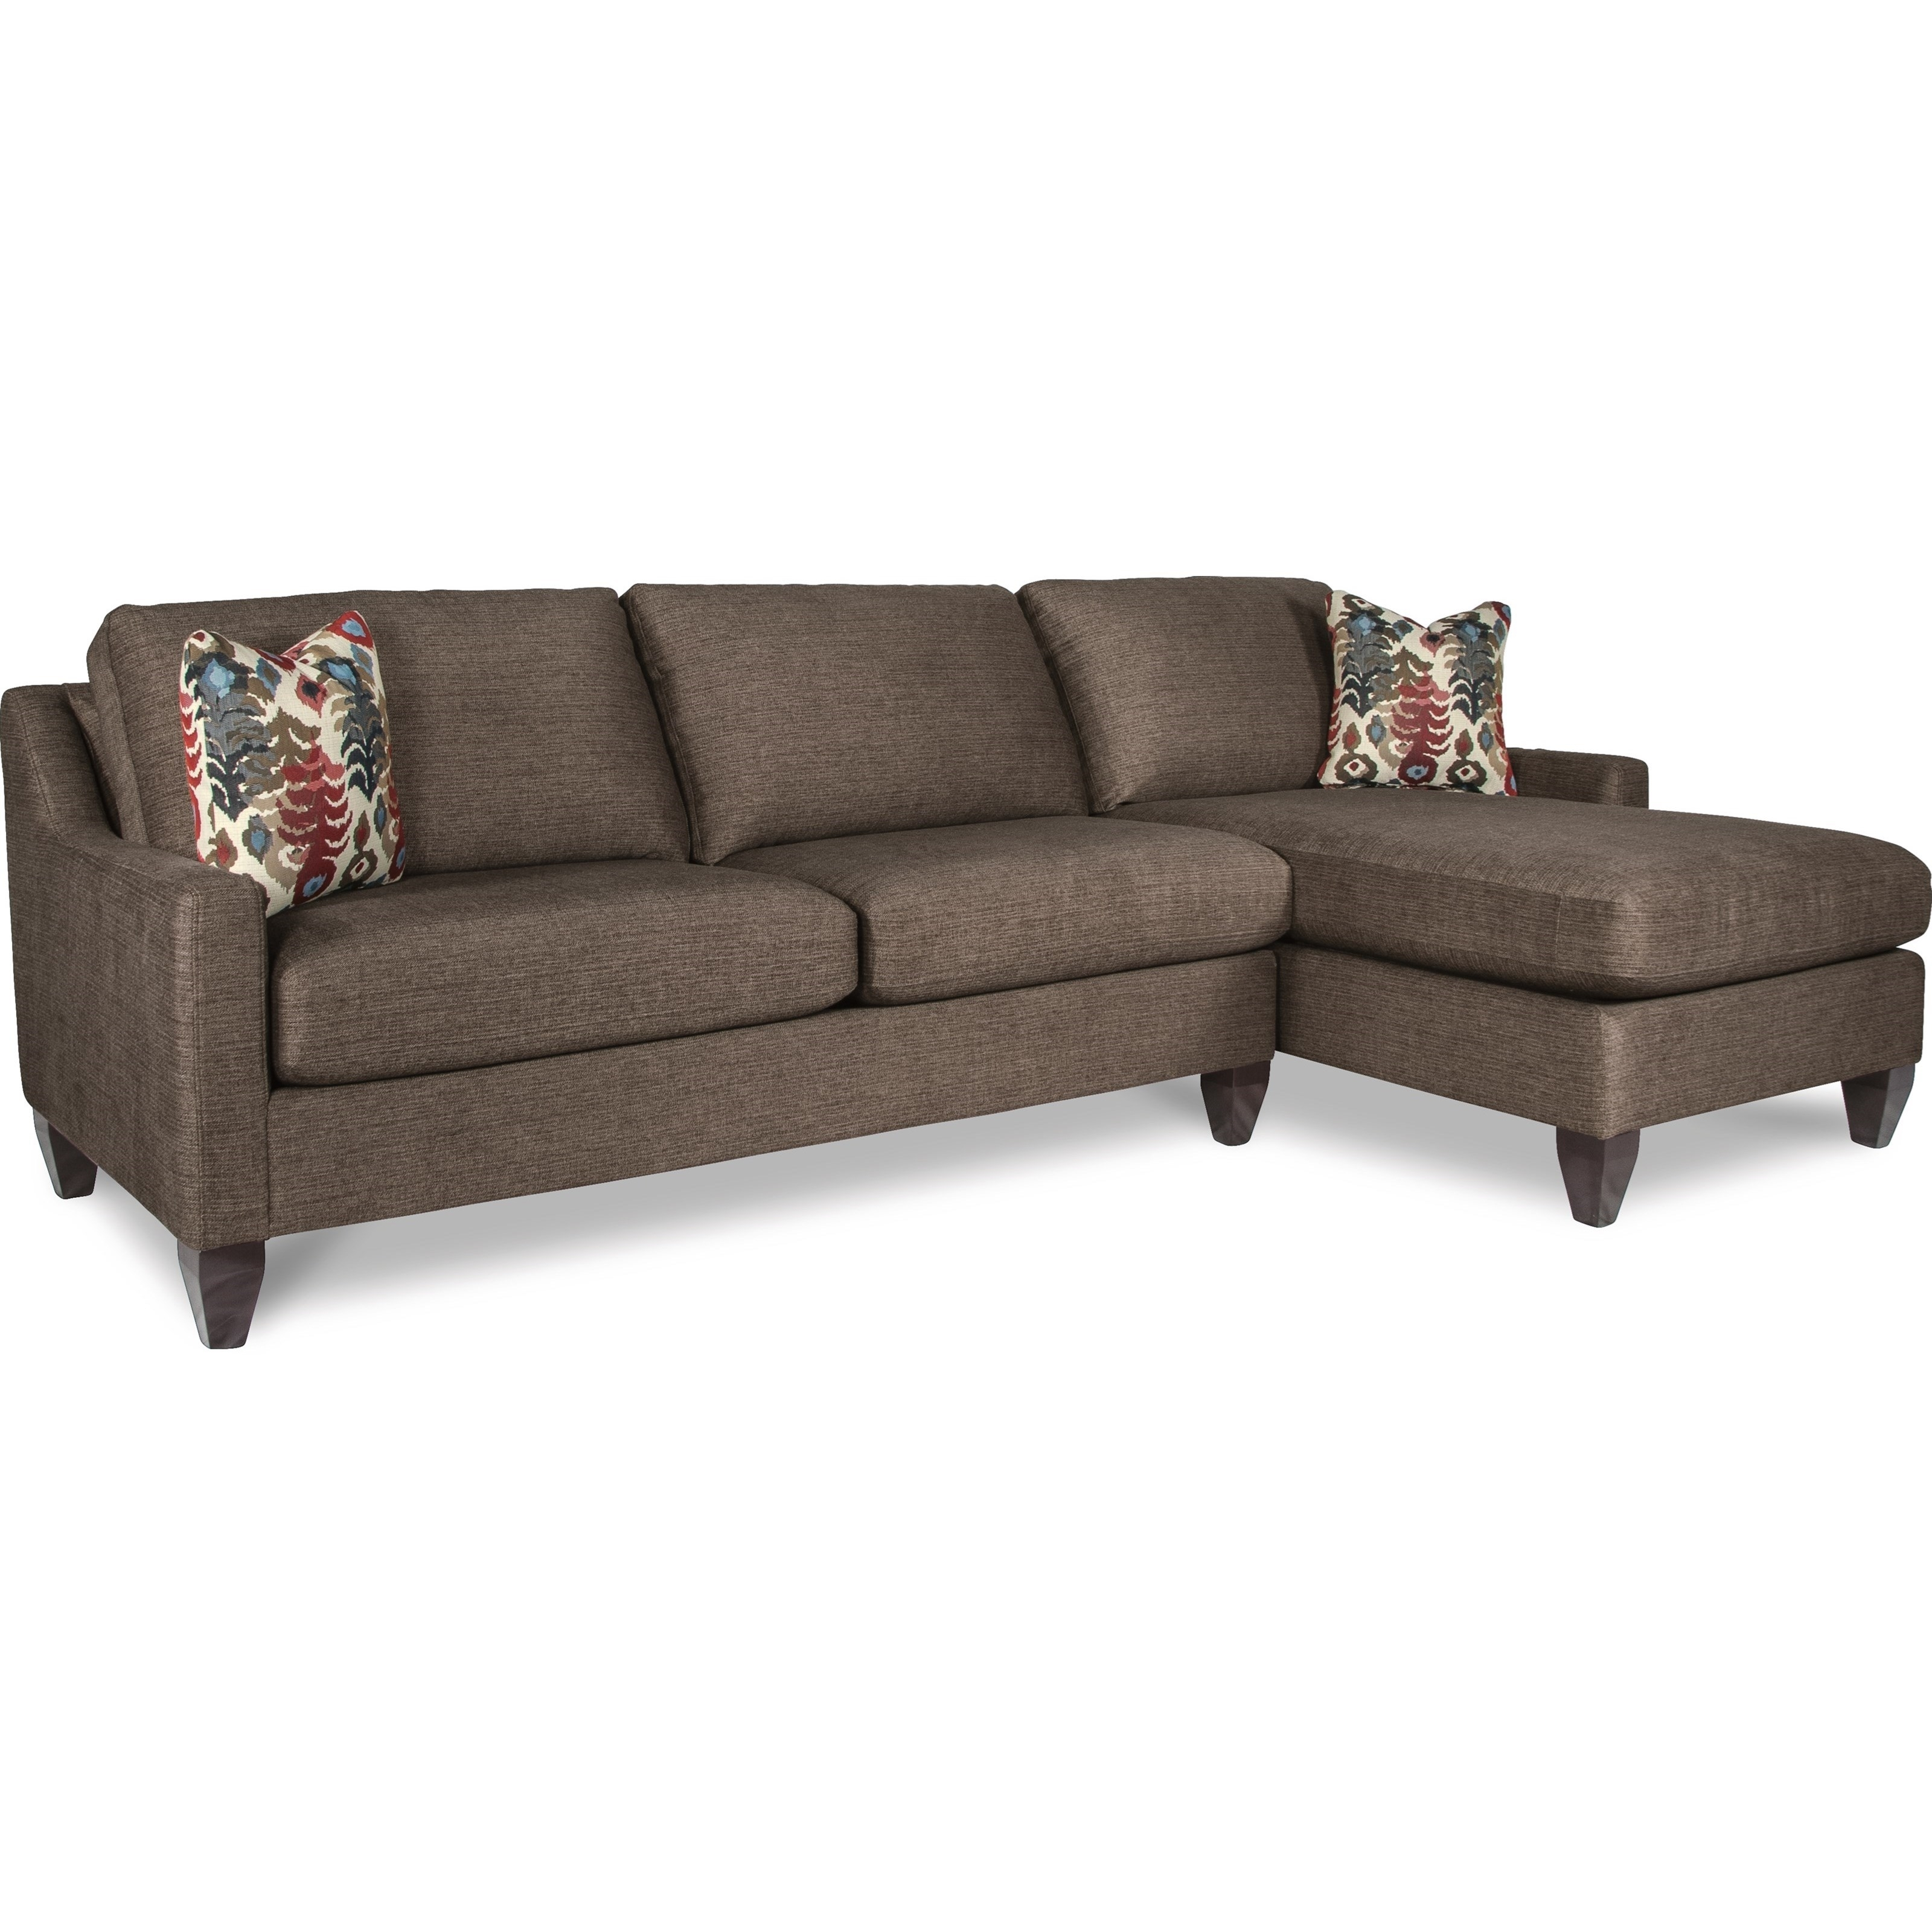 Raf Chaise Laf Sofa | Baci Living Room in Mcdade Graphite 2 Piece Sectionals With Raf Chaise (Image 21 of 30)